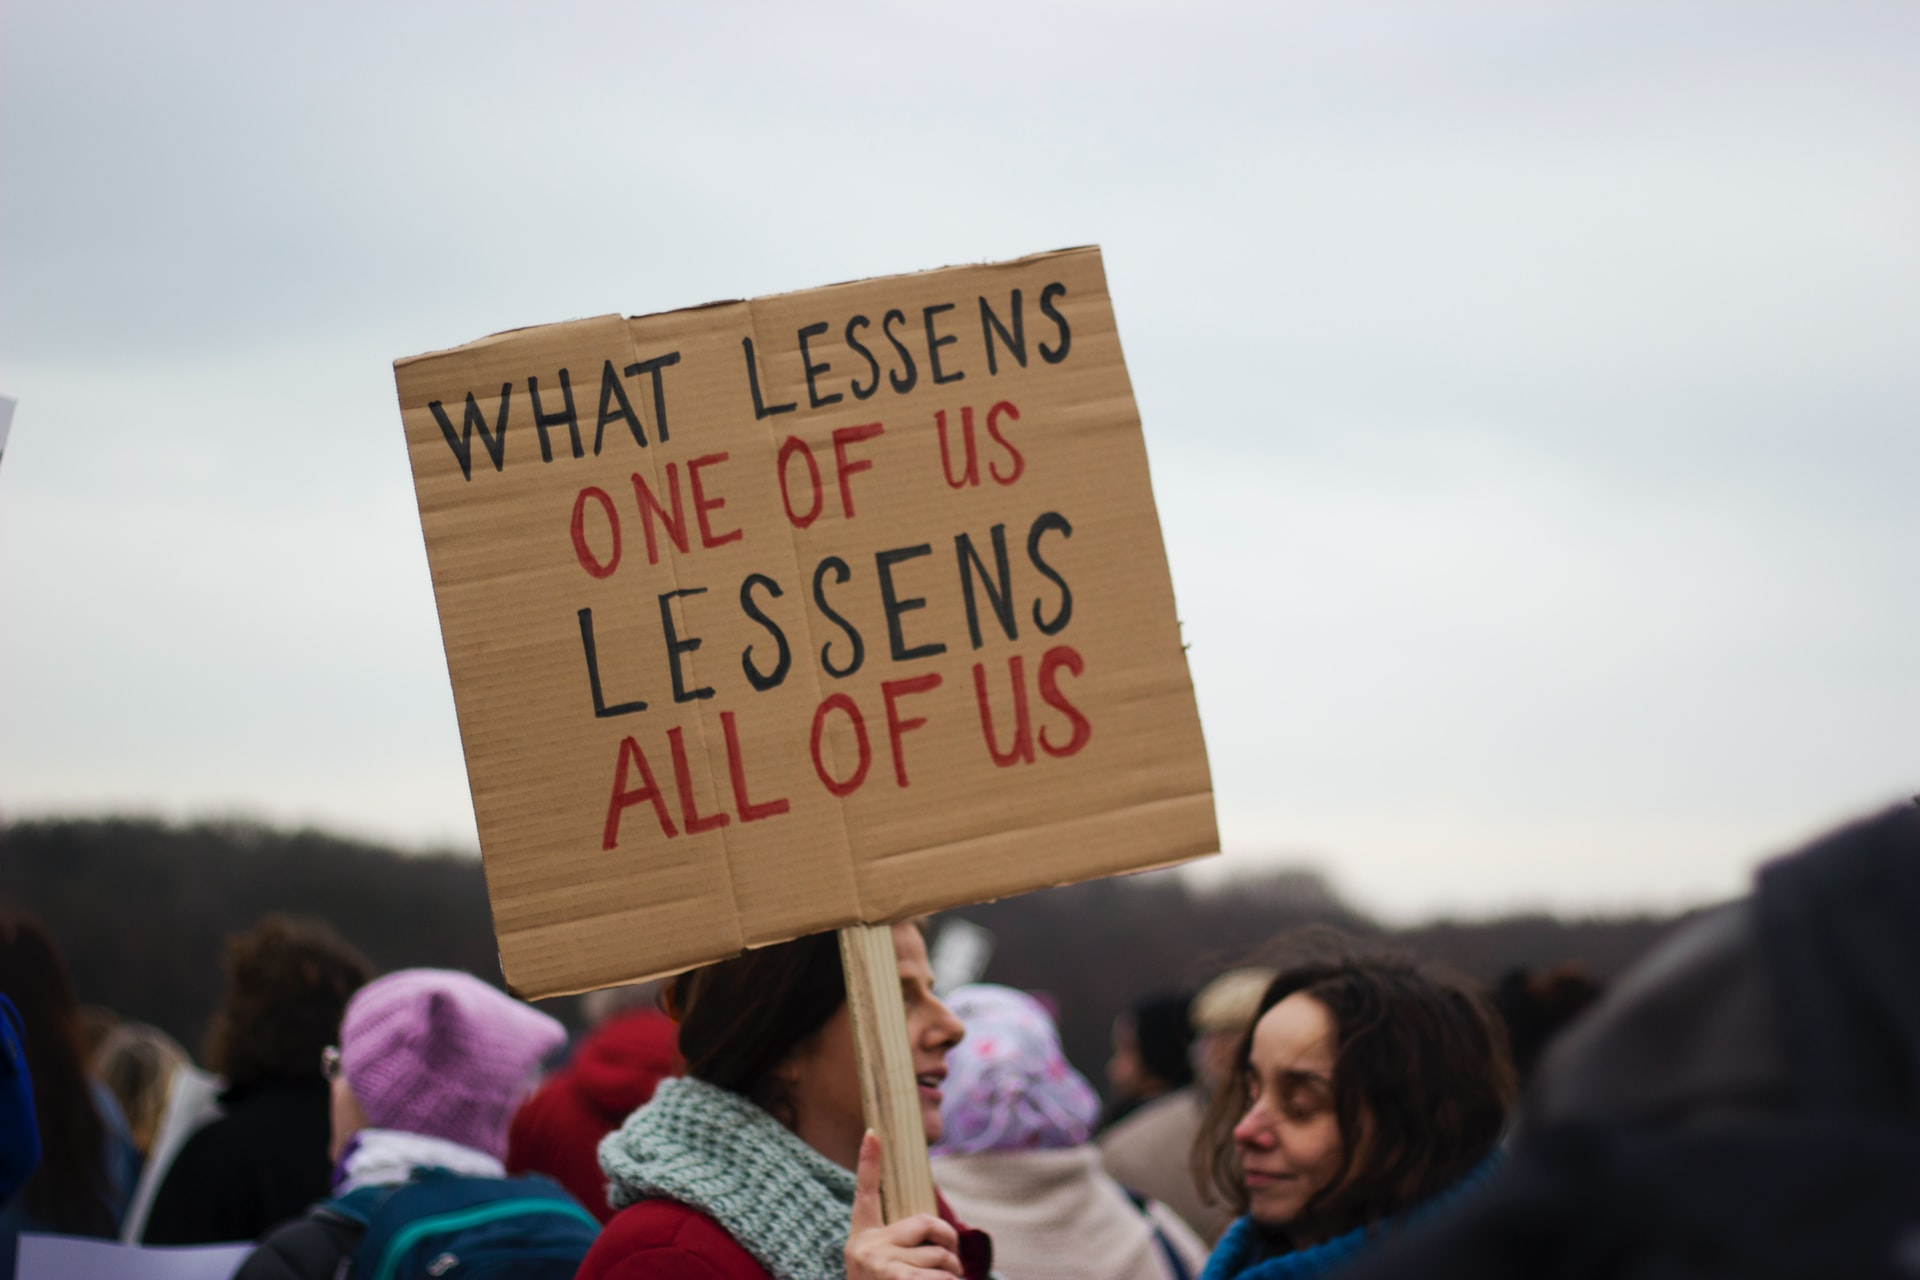 women holding protest sign about equality